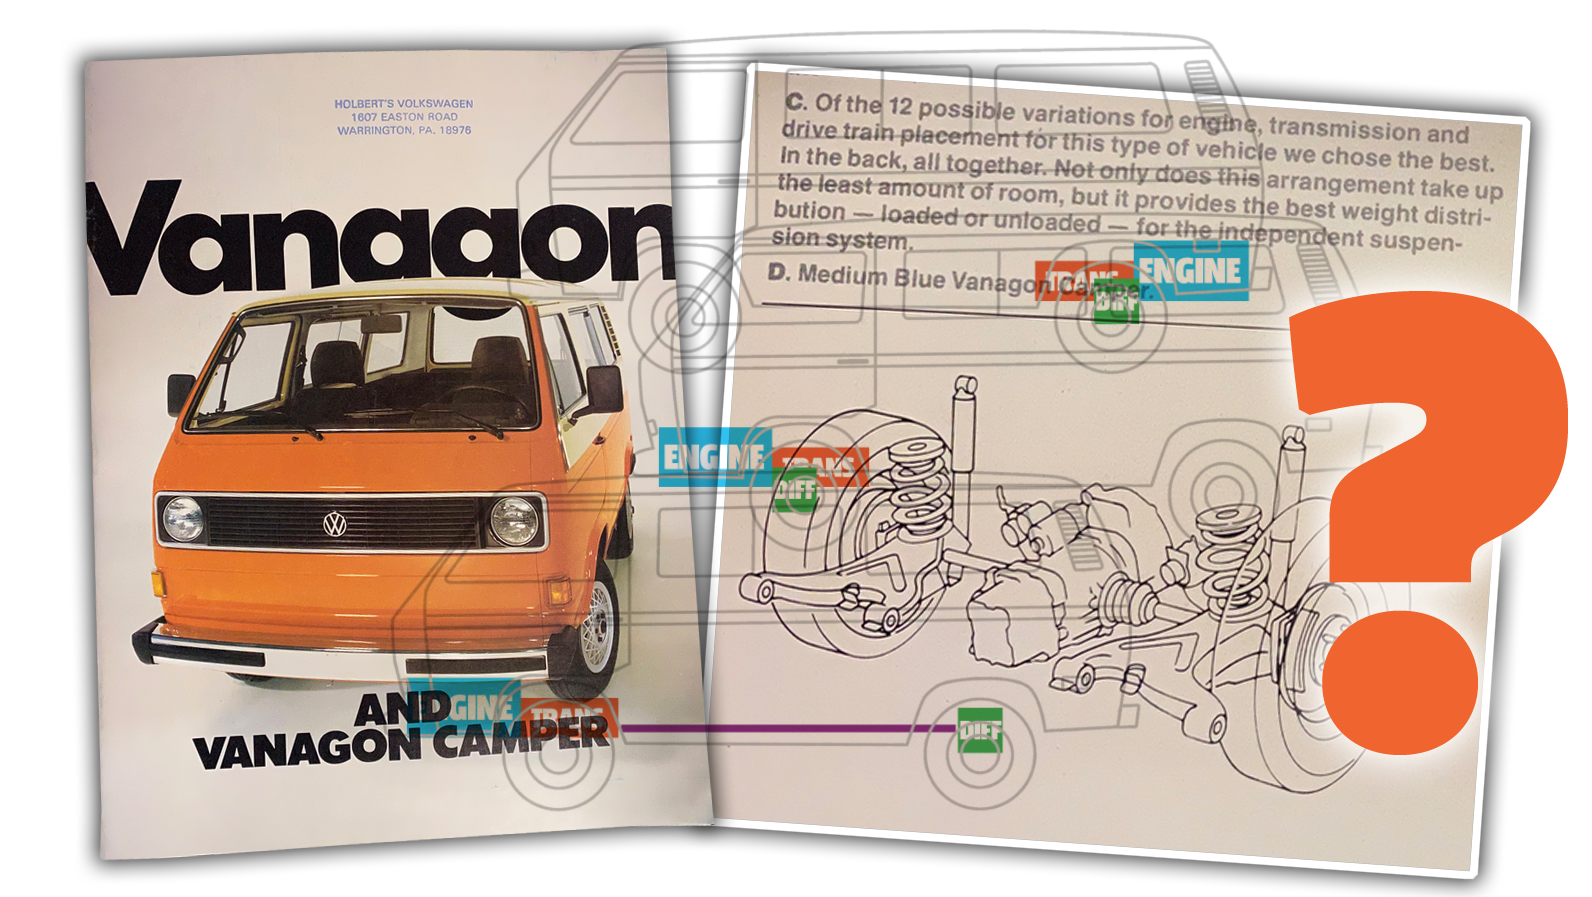 This Old VW Vanagon Brochure Contains An Interesting And Unintentional Hidden Brain Teaser